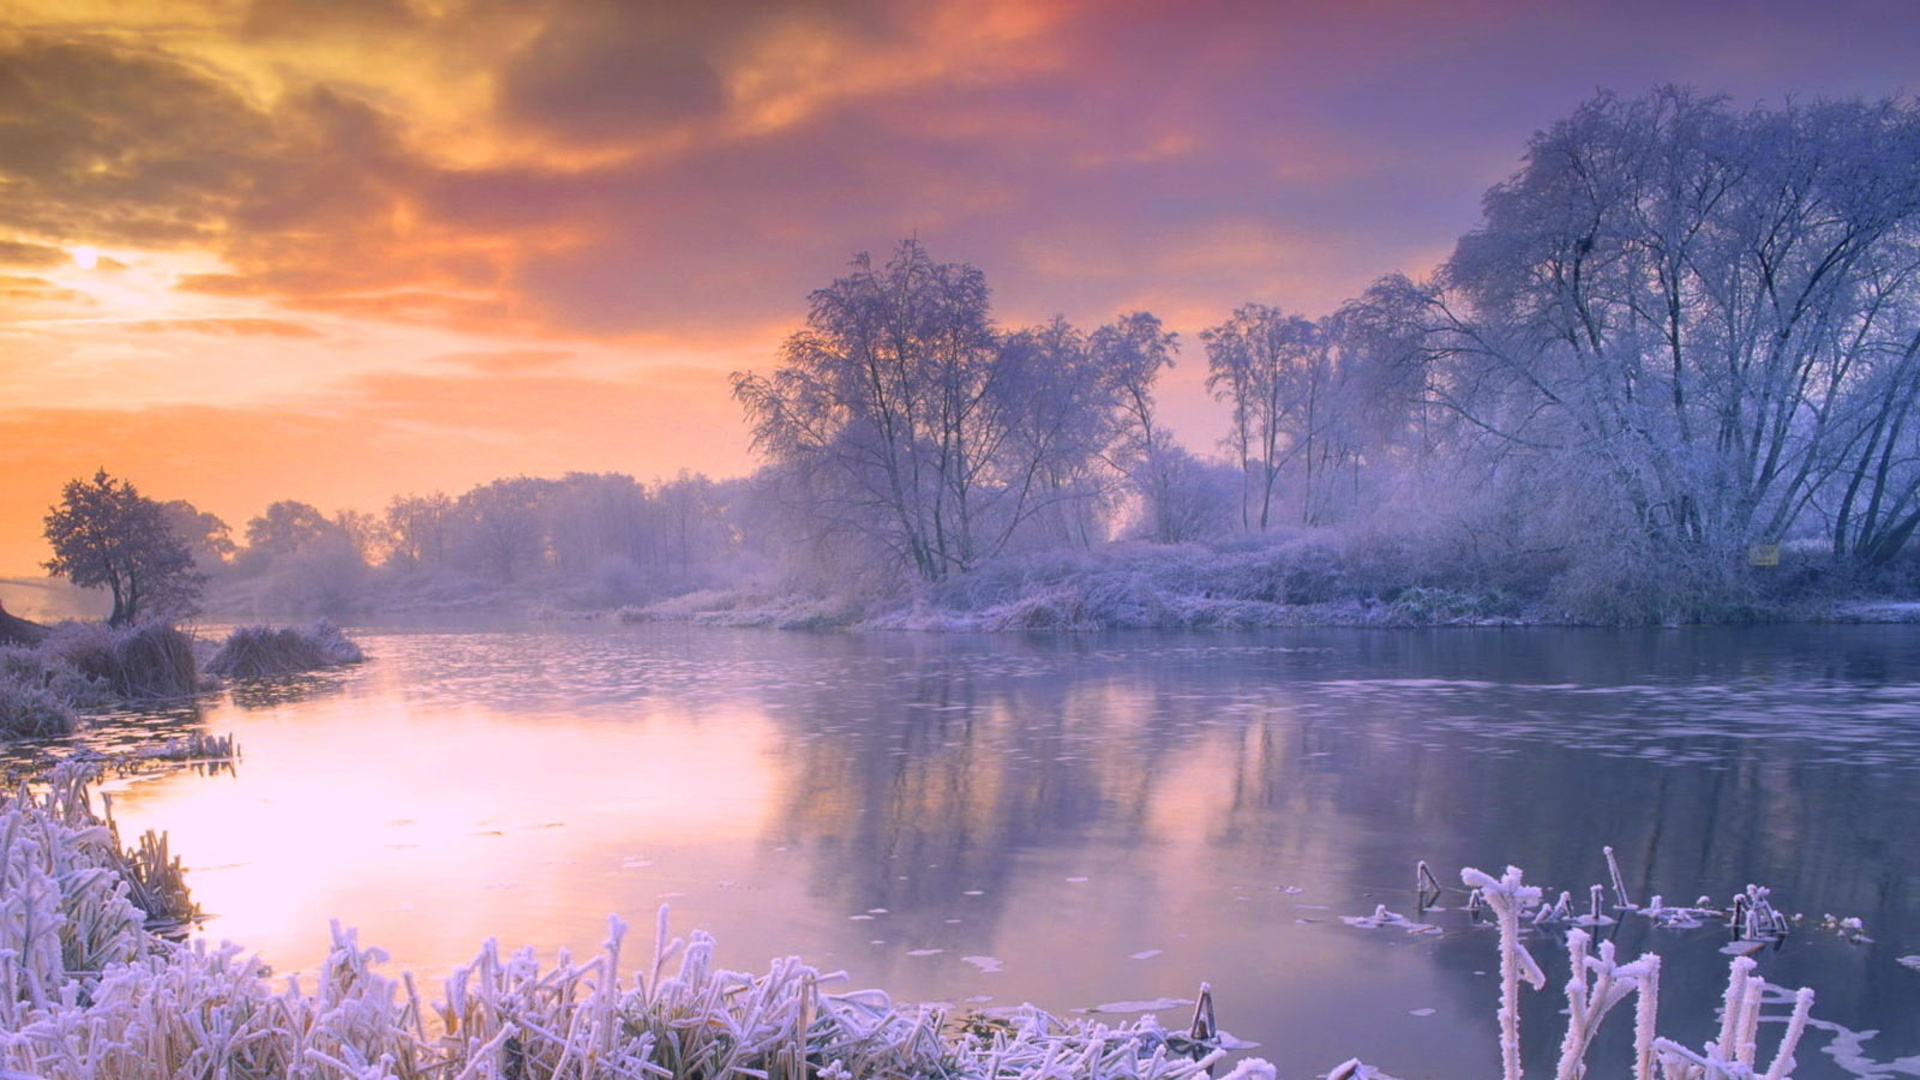 Winter Hd Wallpaper Background Image 1920x1080 Id